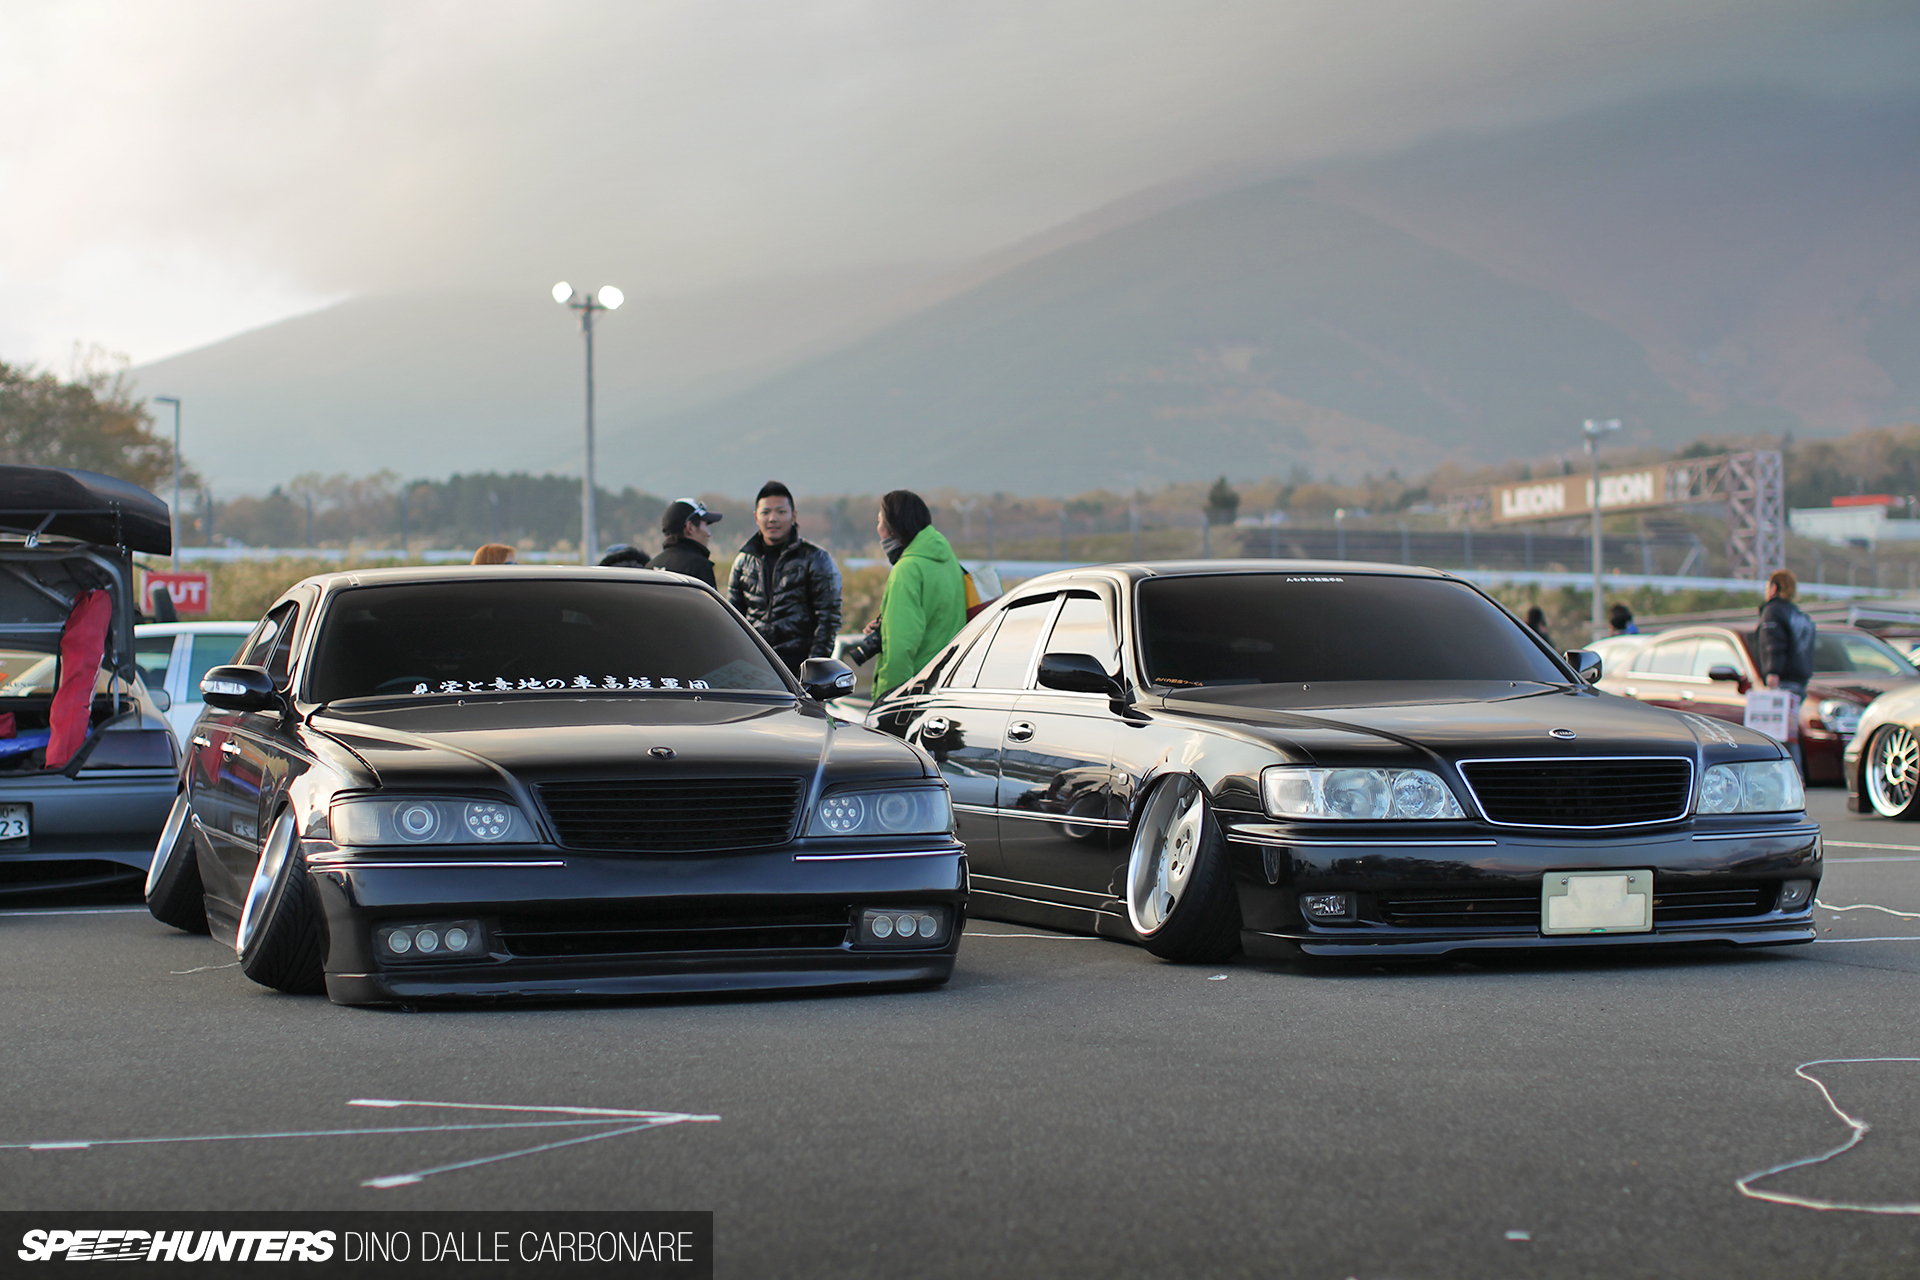 Stance Nation Hits Japan - Speedhunters